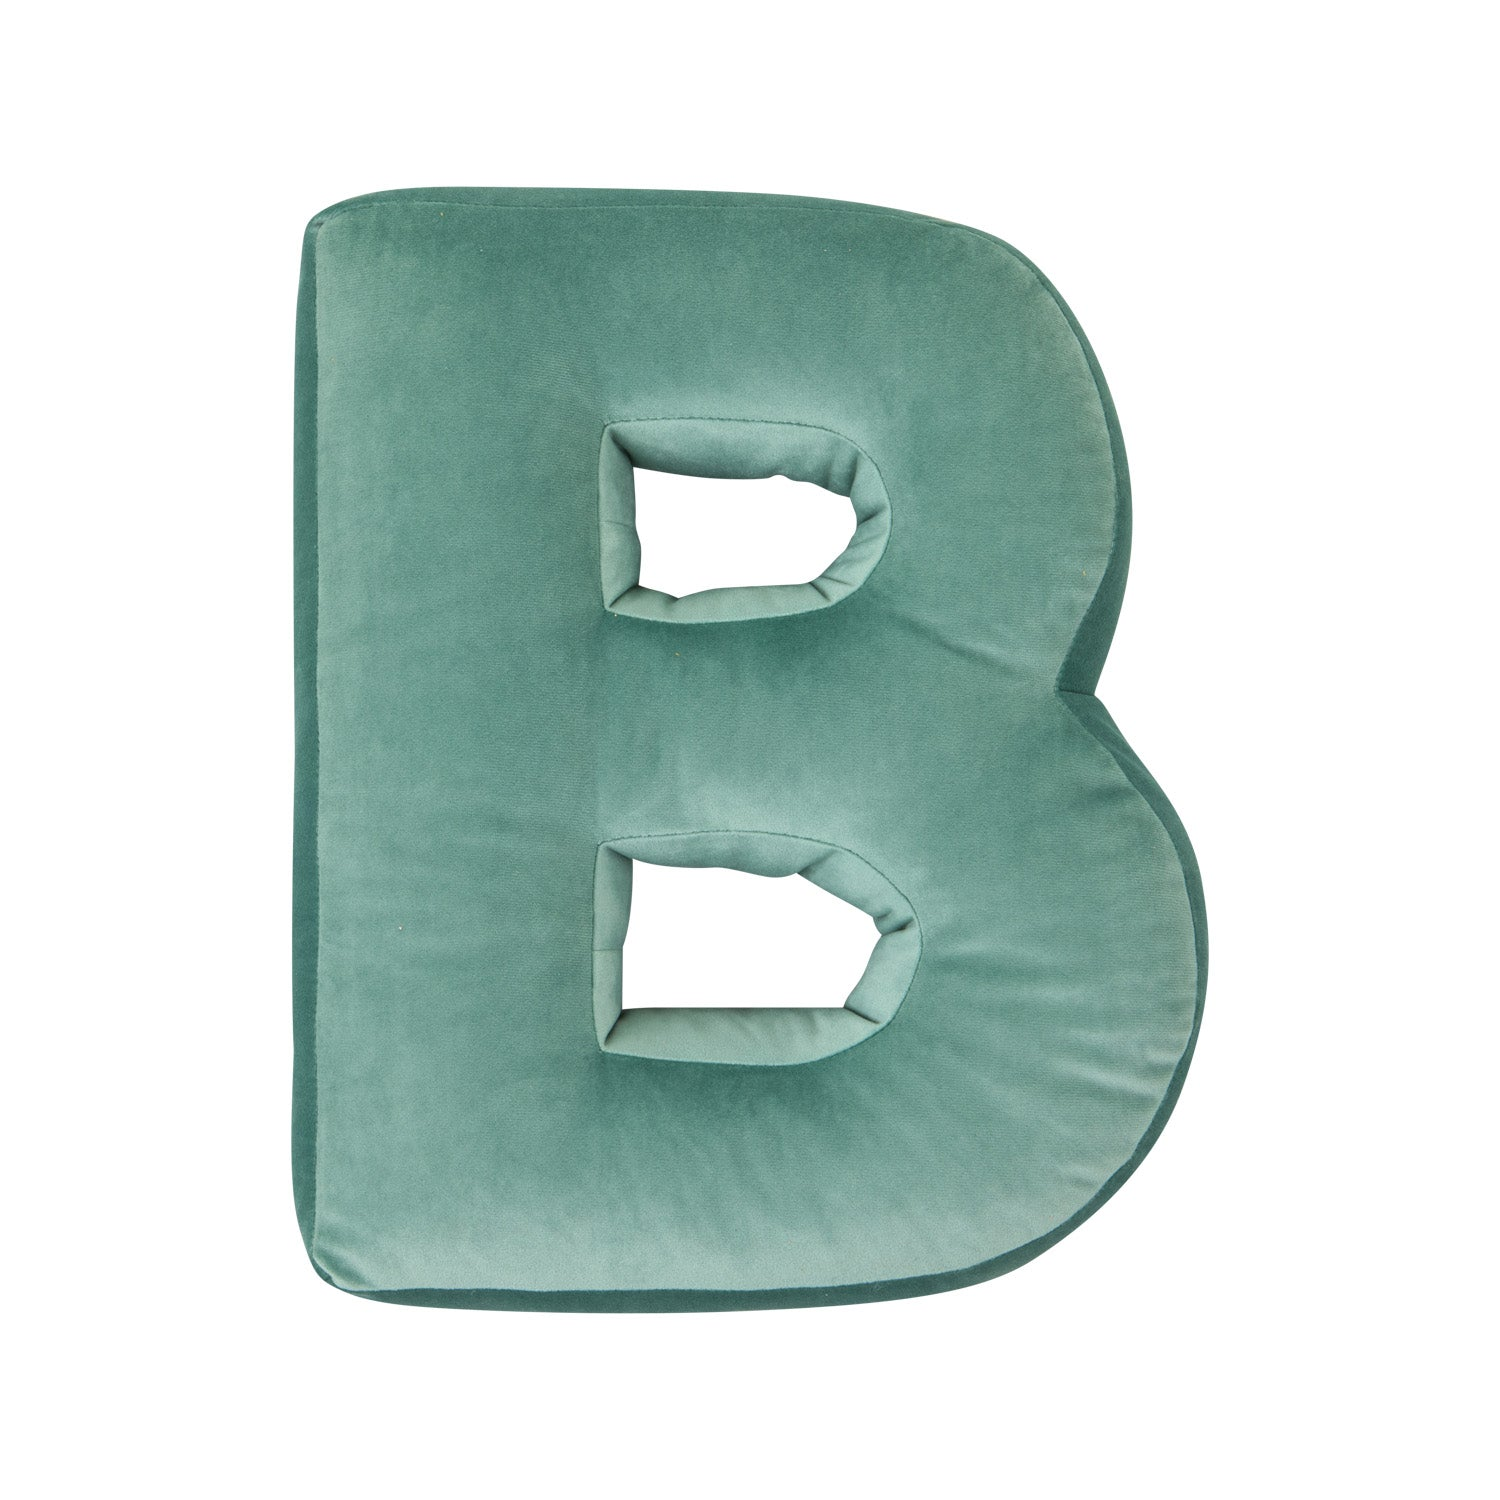 Velvet Letter J Cushion by Betty's Home - Click for colour options!